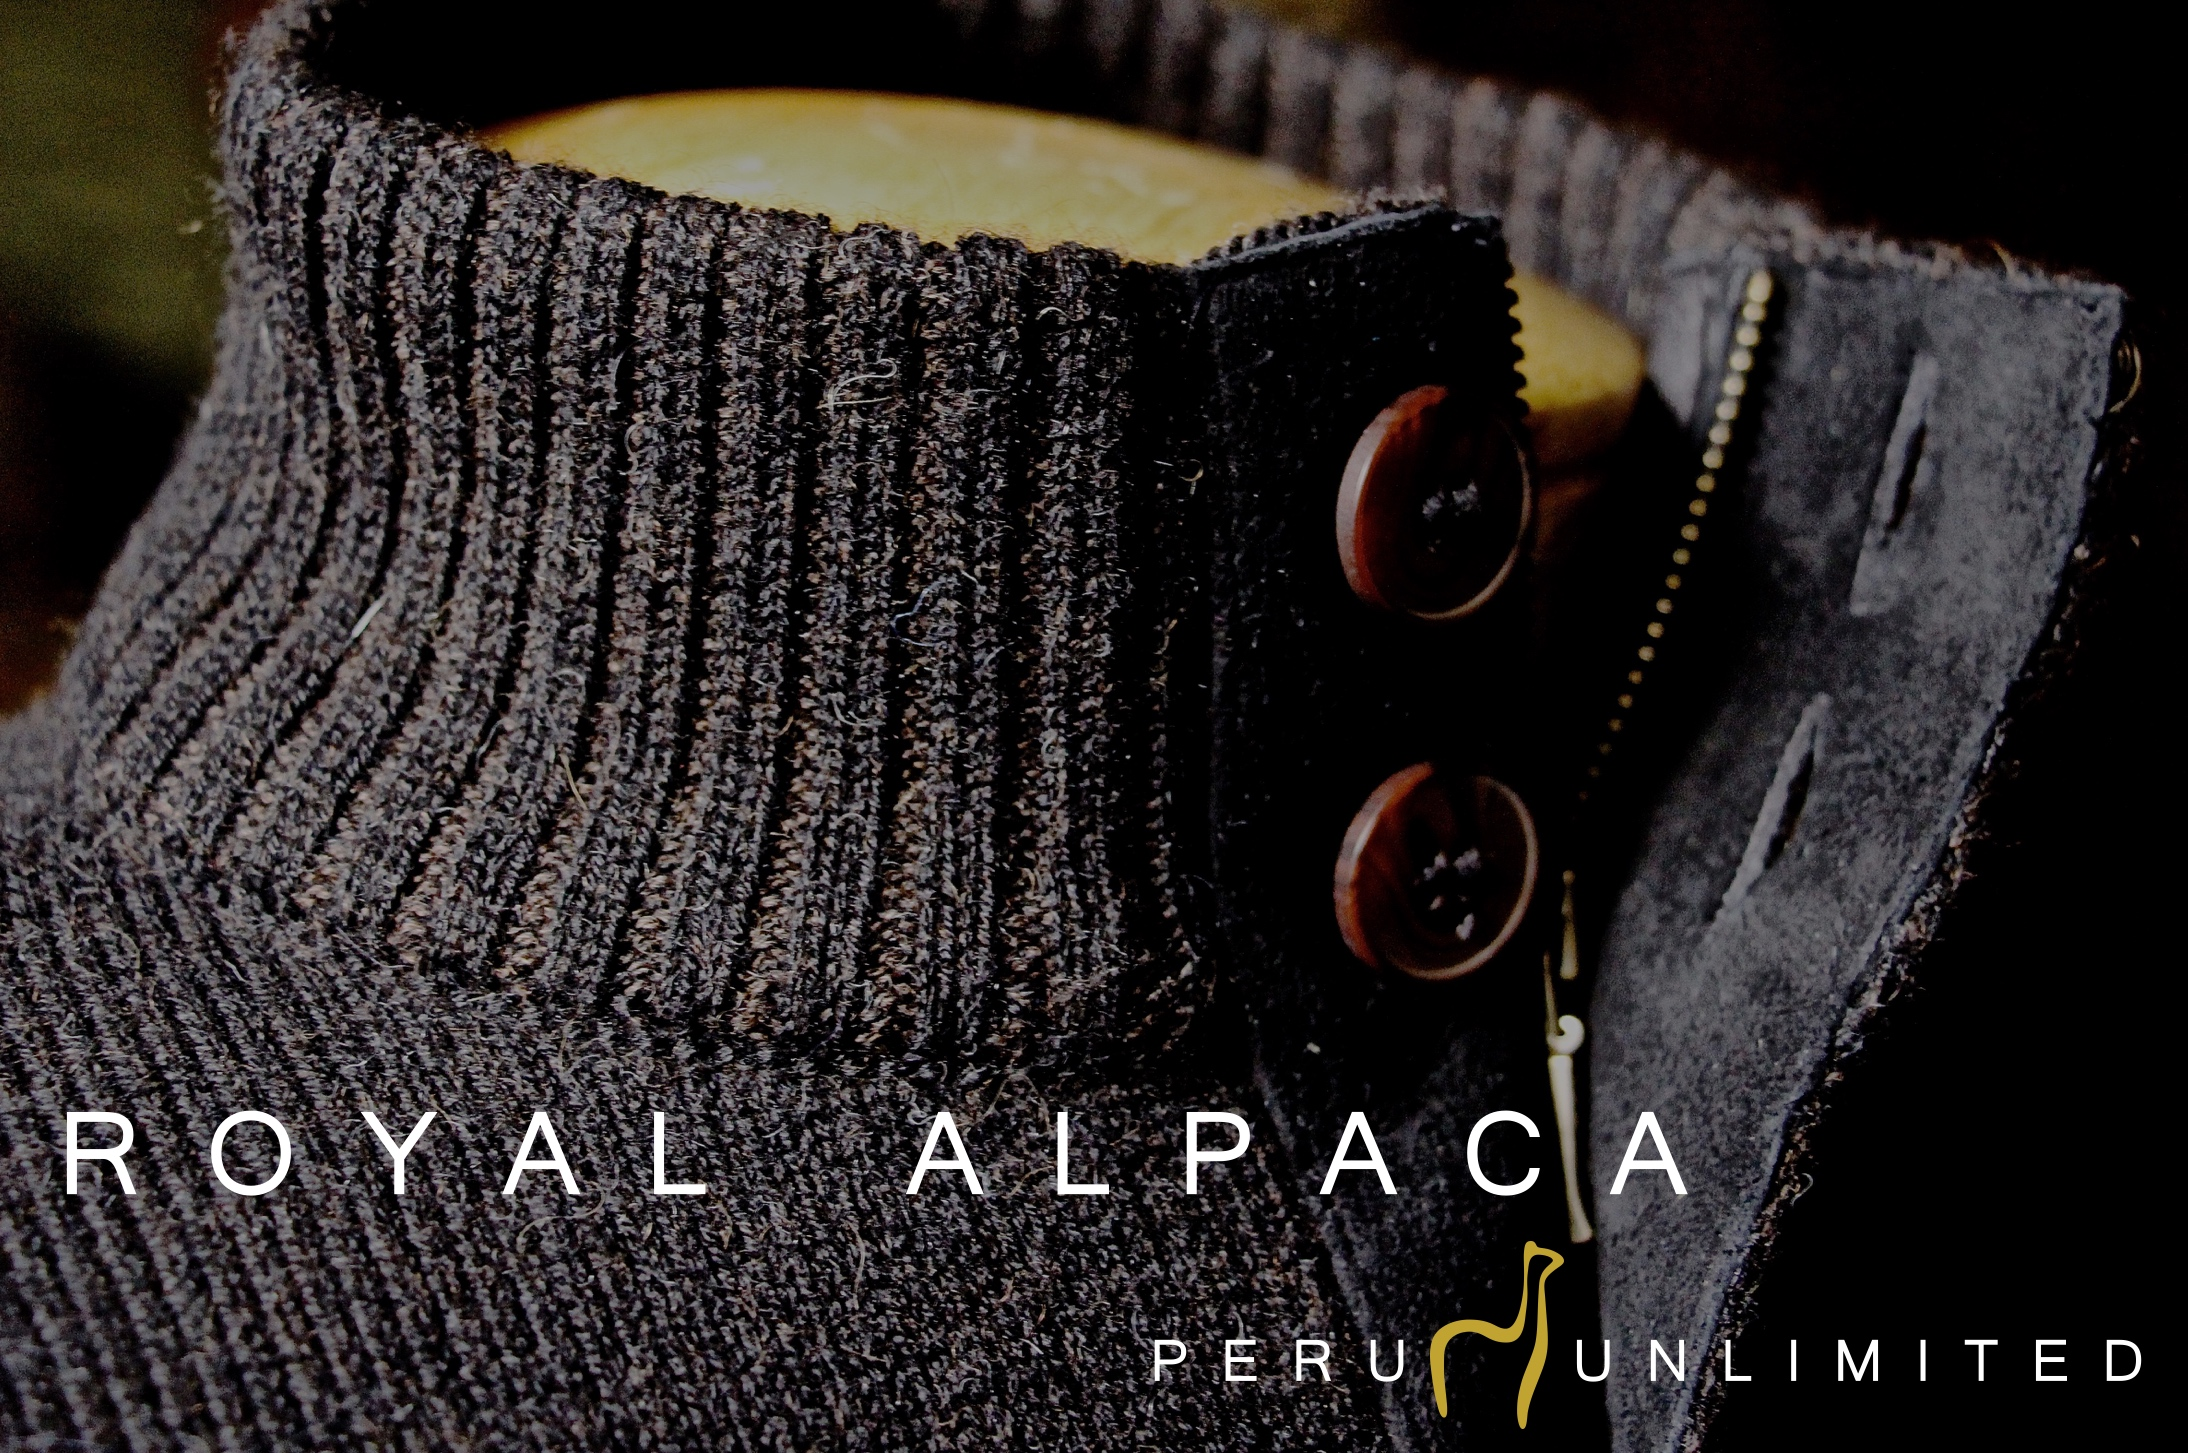 PERU UNLIMITED - Royal Alpaca 1